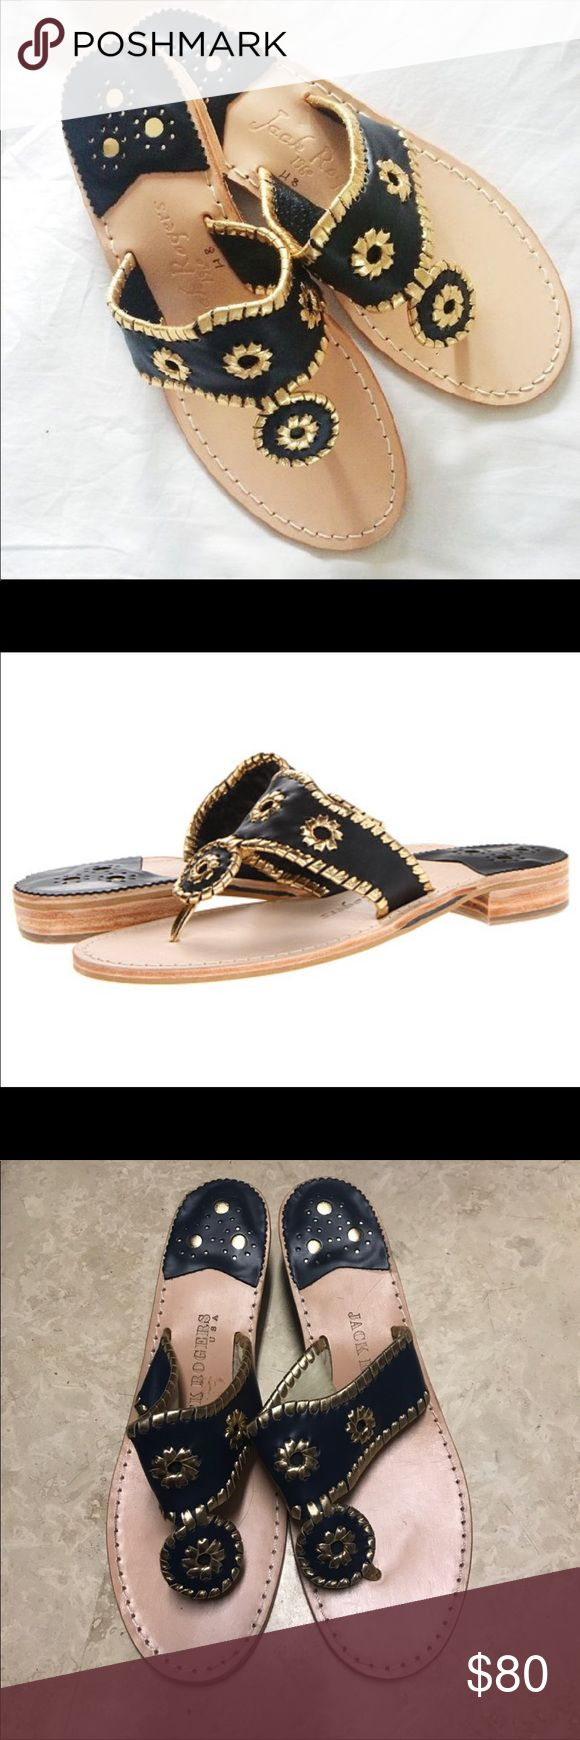 Authentic Jack Rogers sandals Beautiful authentic Jack Rogers gold and black sandals. Very good condition. Size 9. Jack Rogers Shoes Sandals